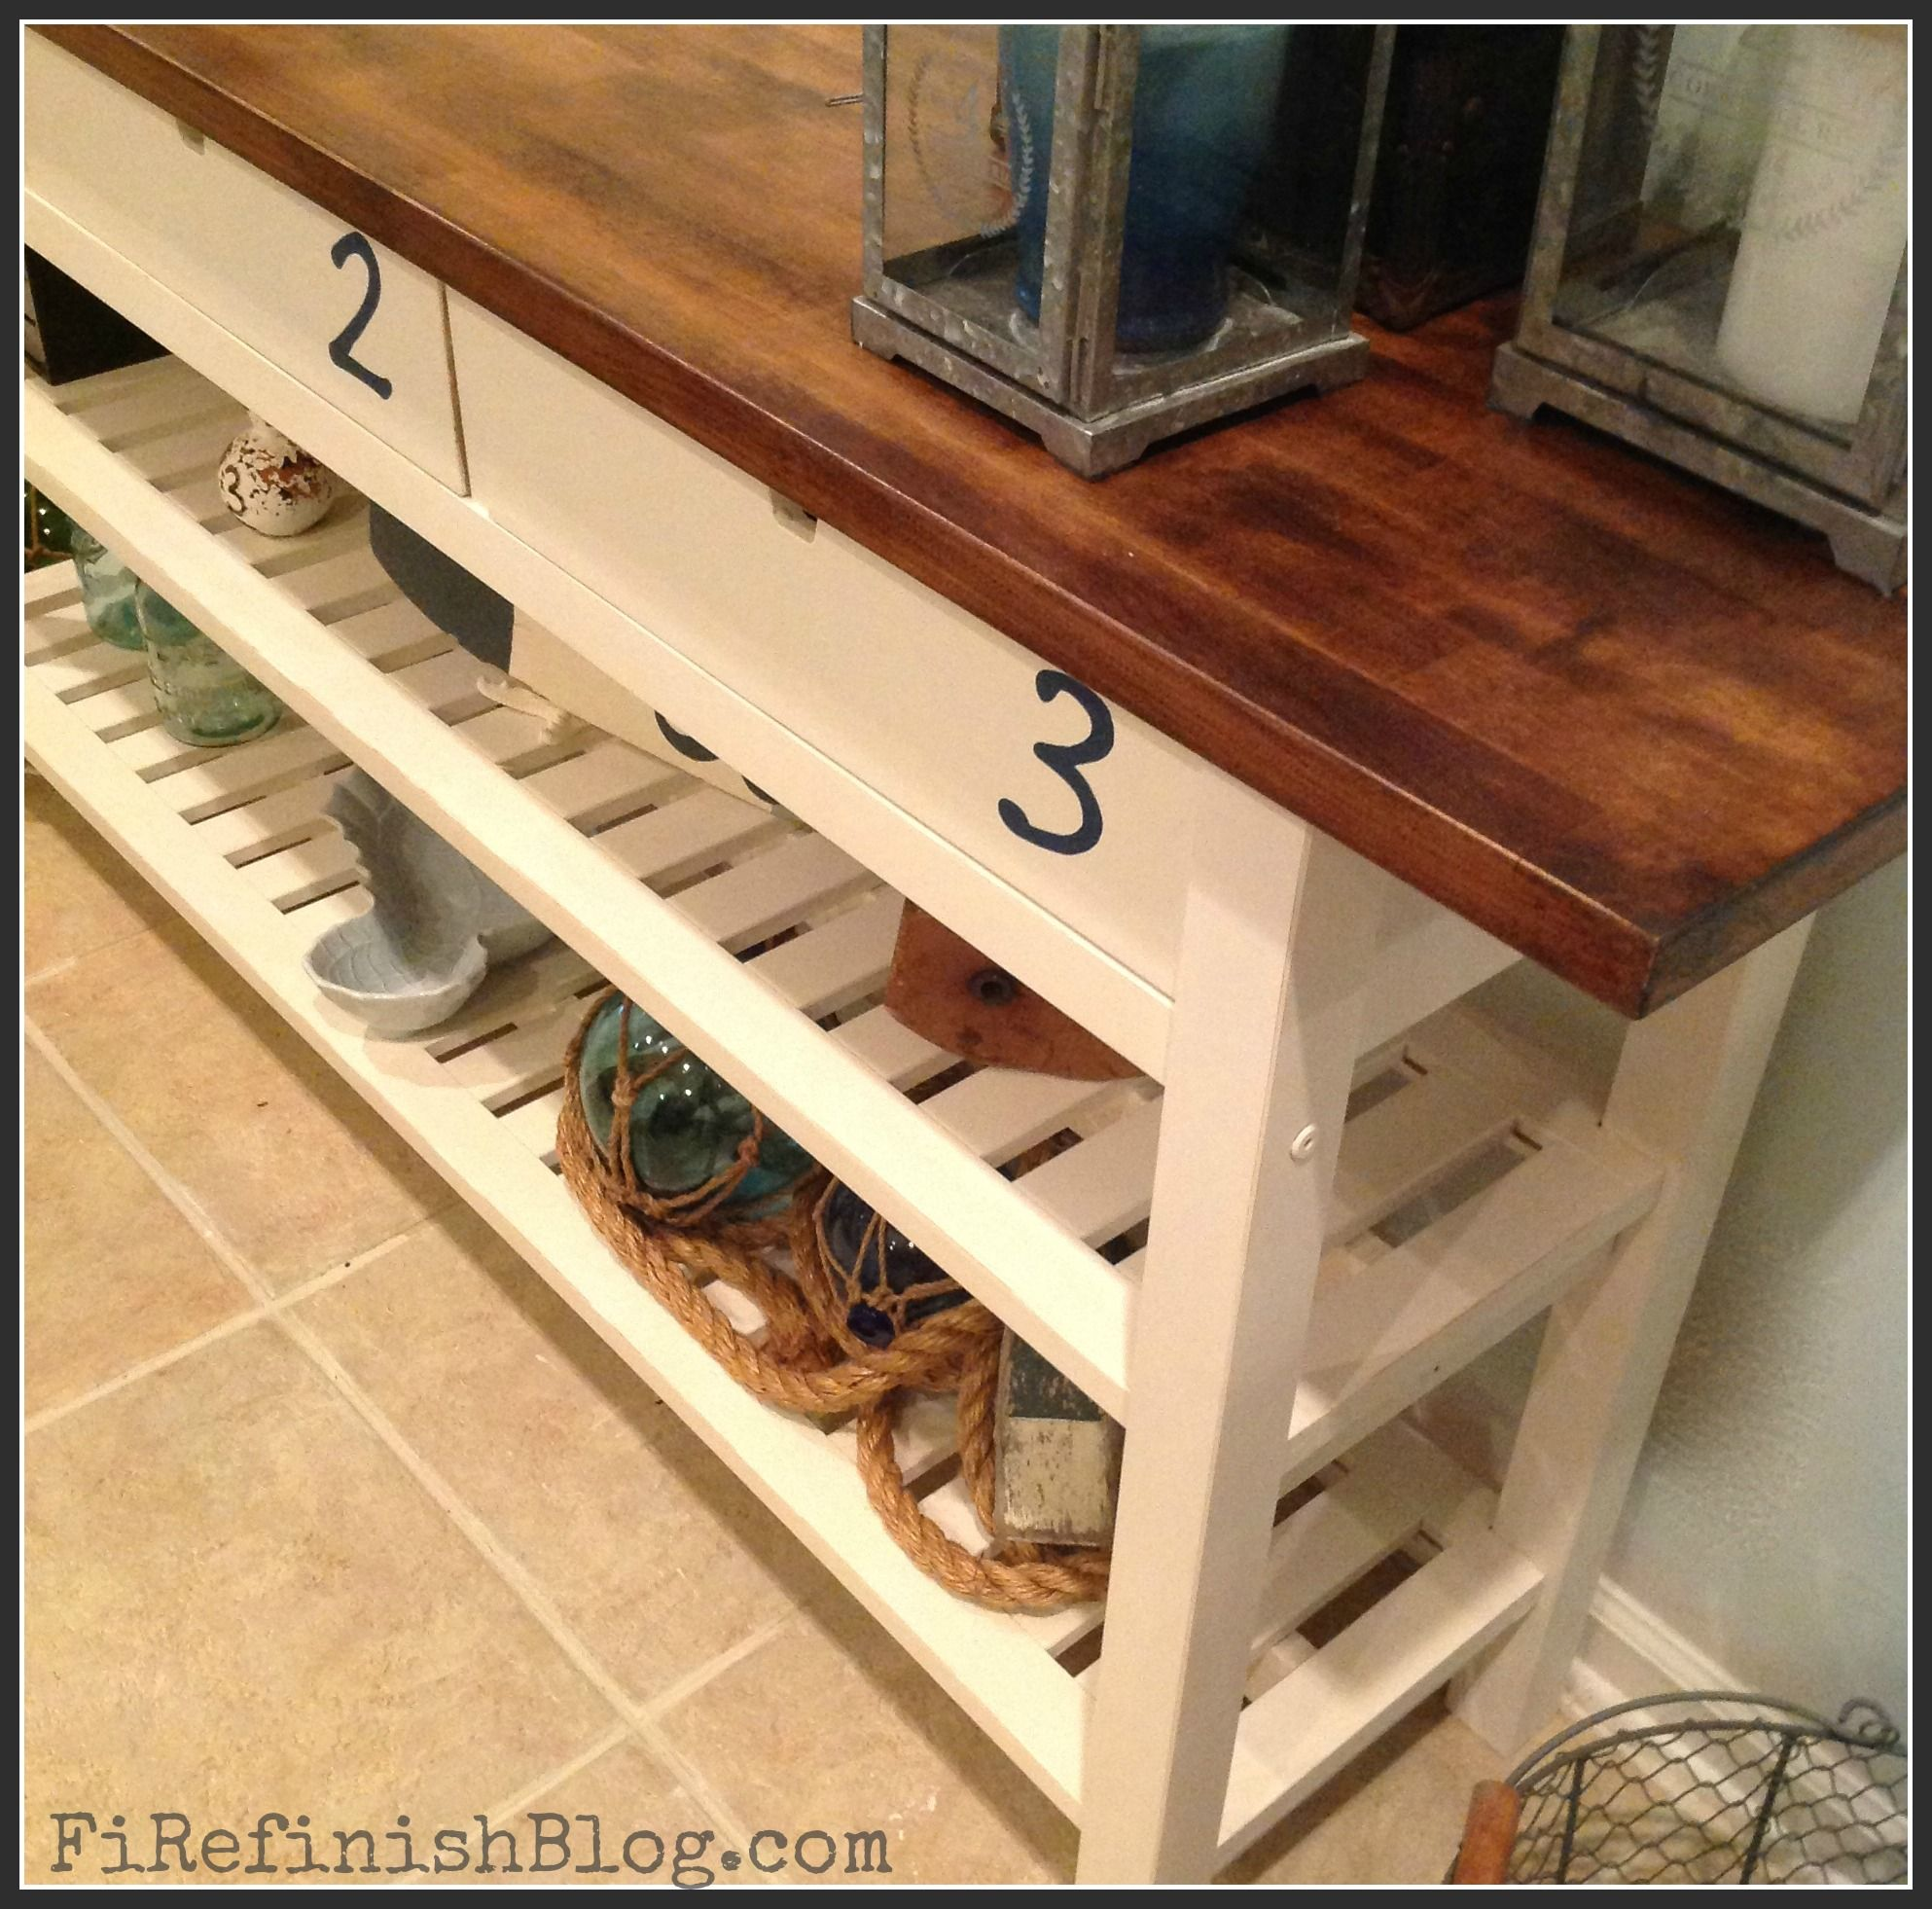 Ikea Norden Table Hack: Do This With Dining Table Version....